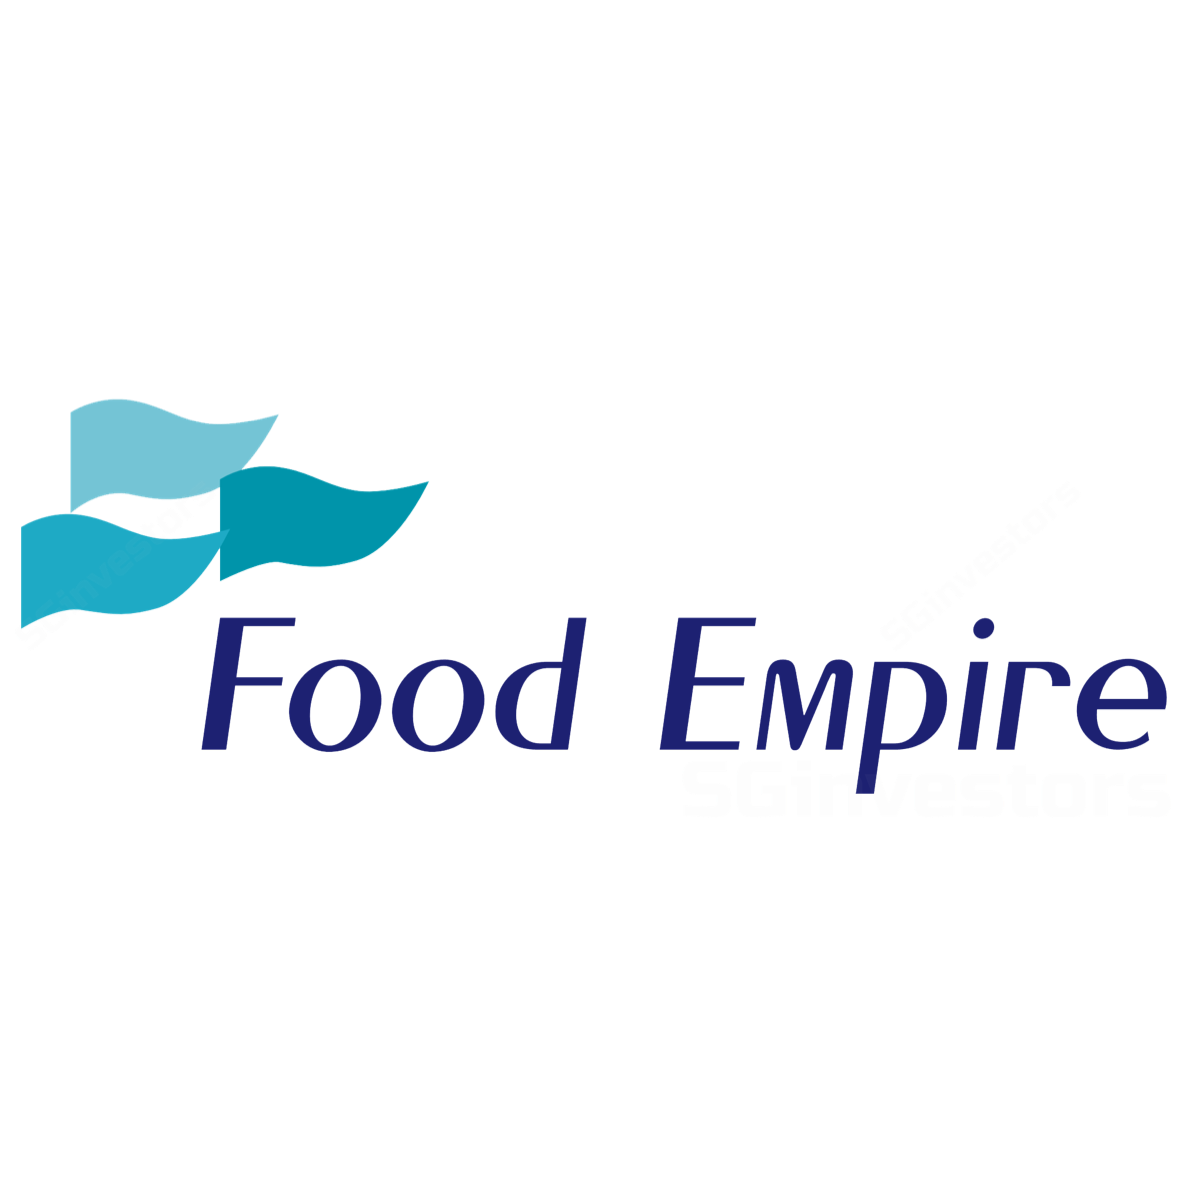 FOOD EMPIRE HOLDINGS LIMITED (SGX:F03) | SGinvestors.io